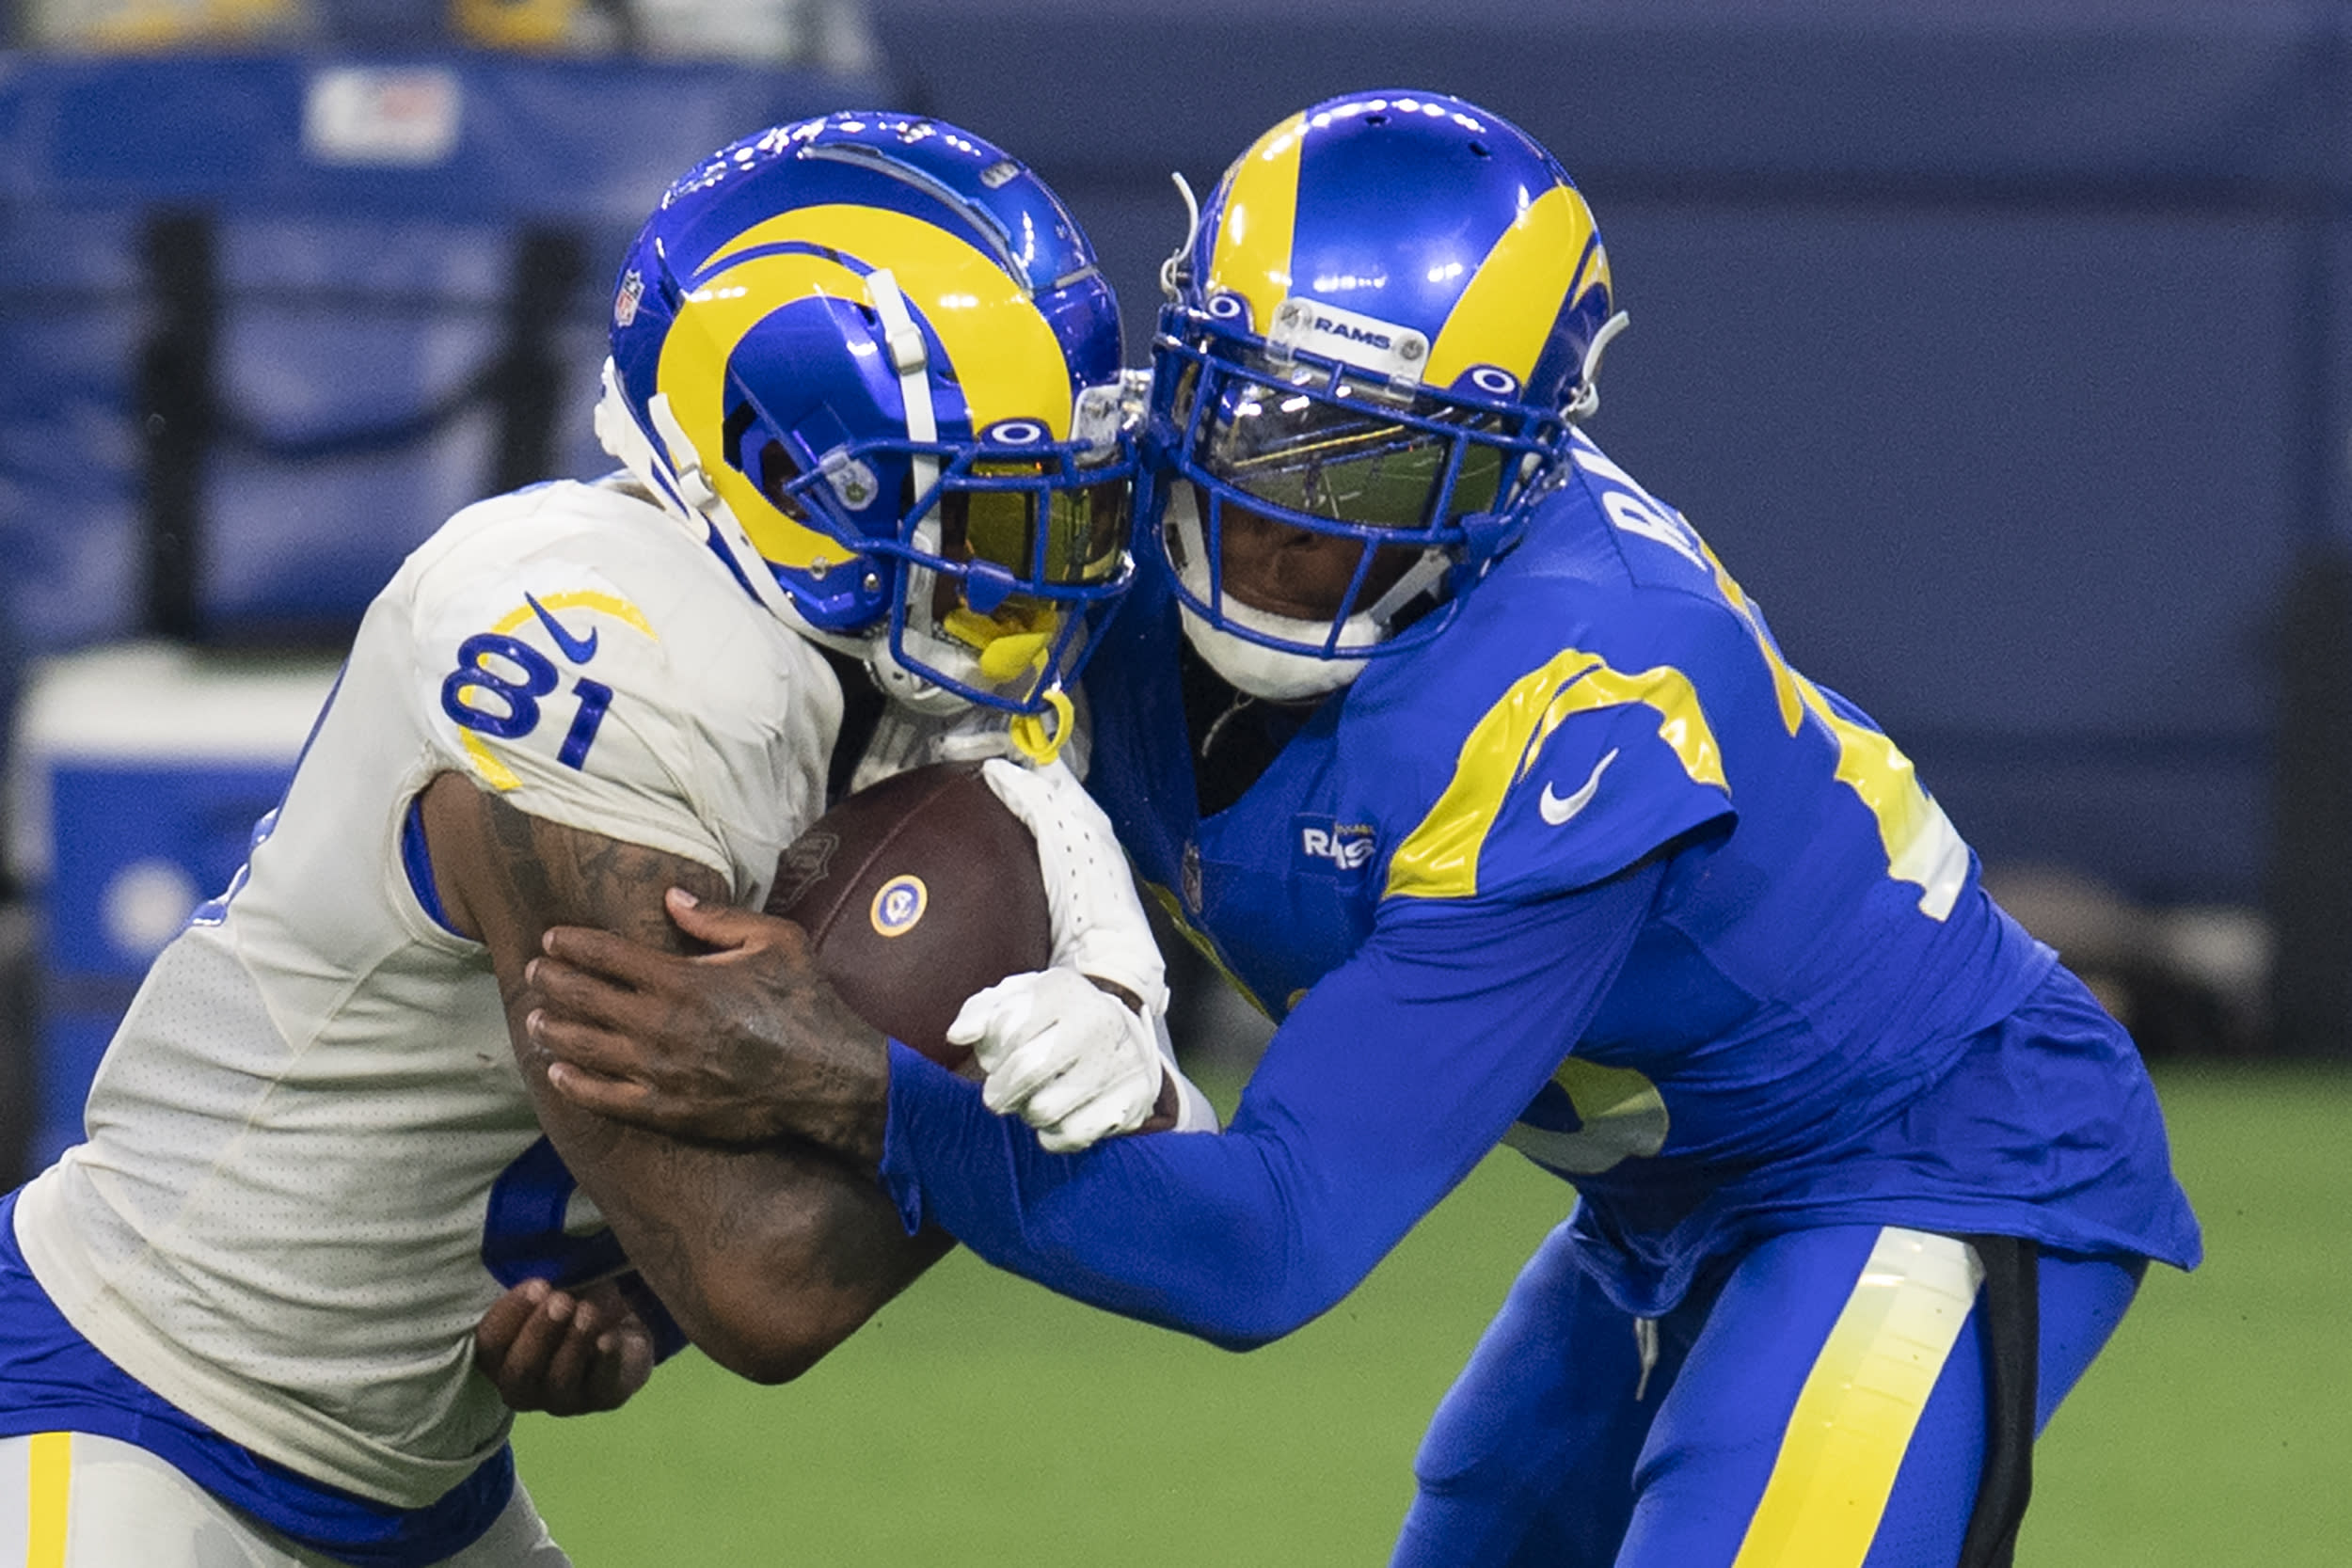 Los Angeles Rams cornerback Jalen Ramsey, right, tackles tight end Gerald Everett during NFL football practice Saturday, Aug. 22, 2020, in Inglewood, Calif. The Rams held their first practice at their new stadium. (AP Photo/Kyusung Gong)